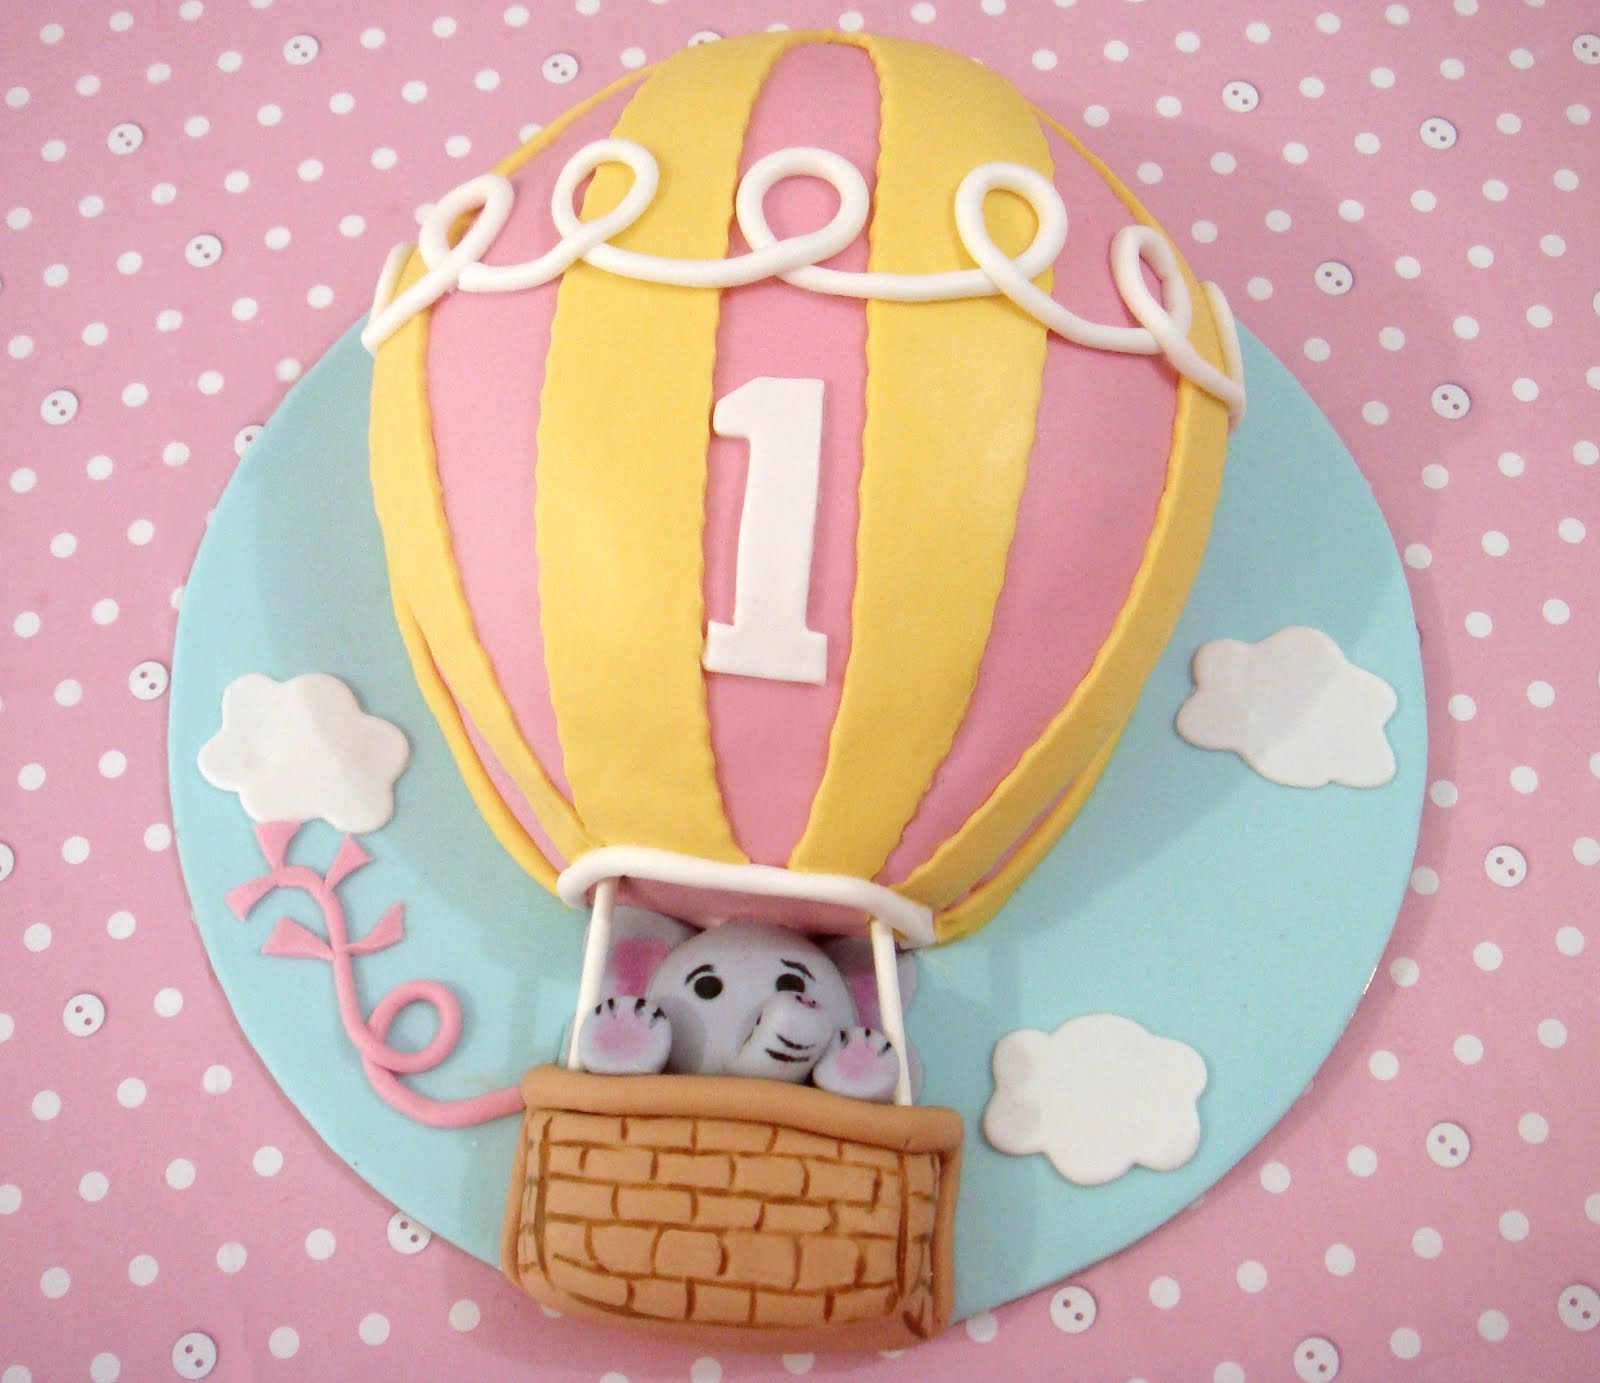 Butter Hearts Sugar Hot Air Balloon Cake And Cookies